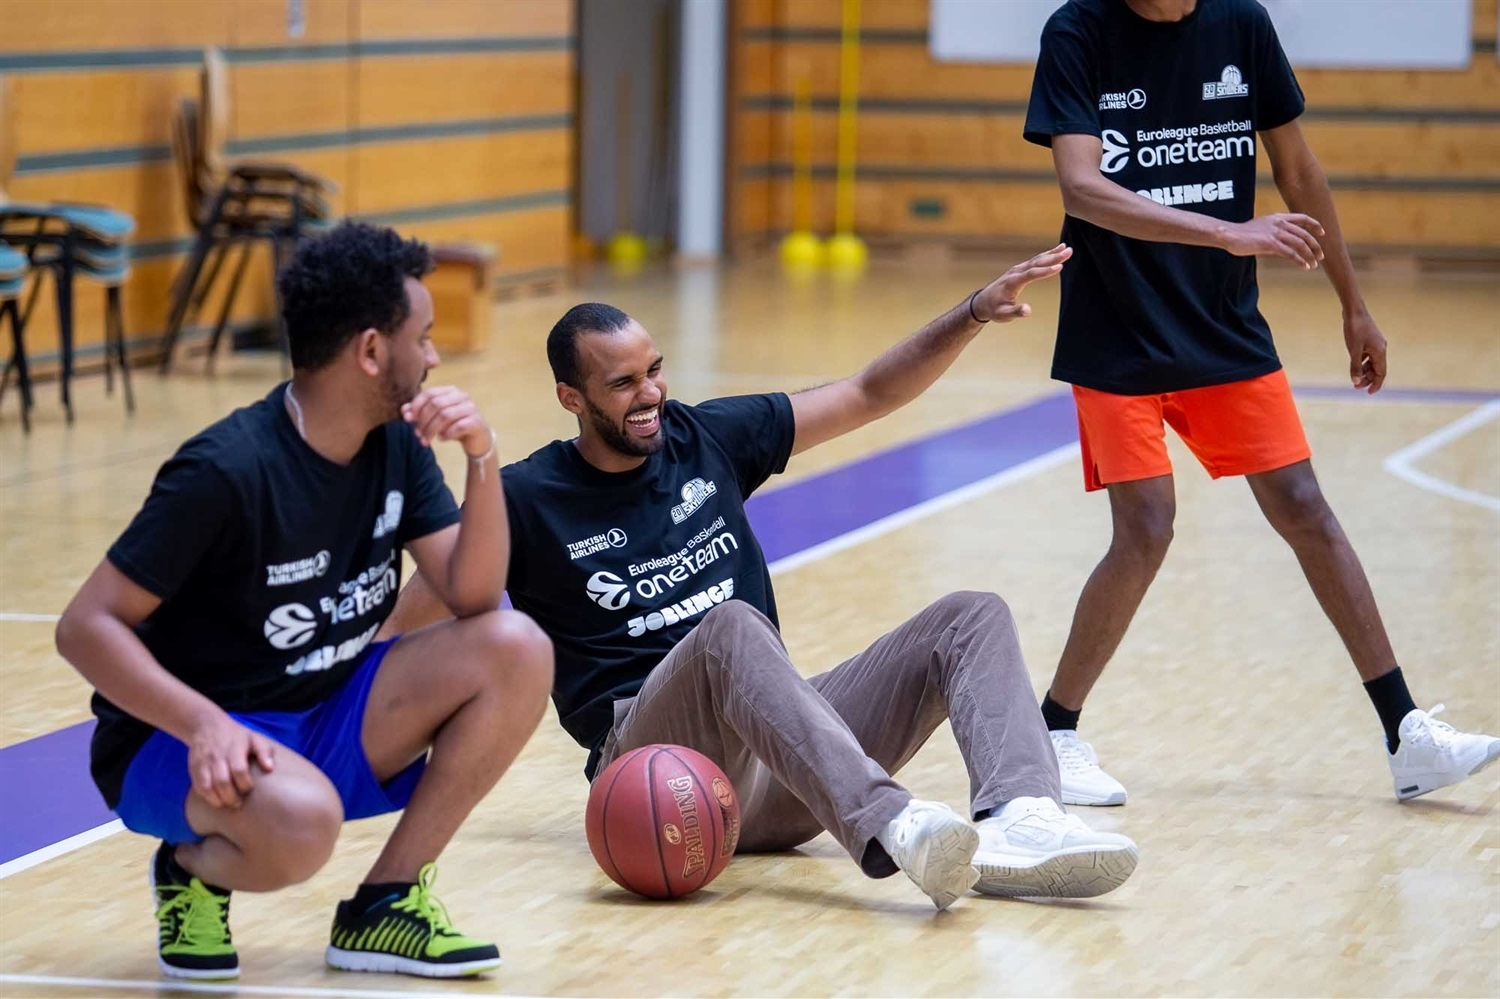 Skyliners One Team session